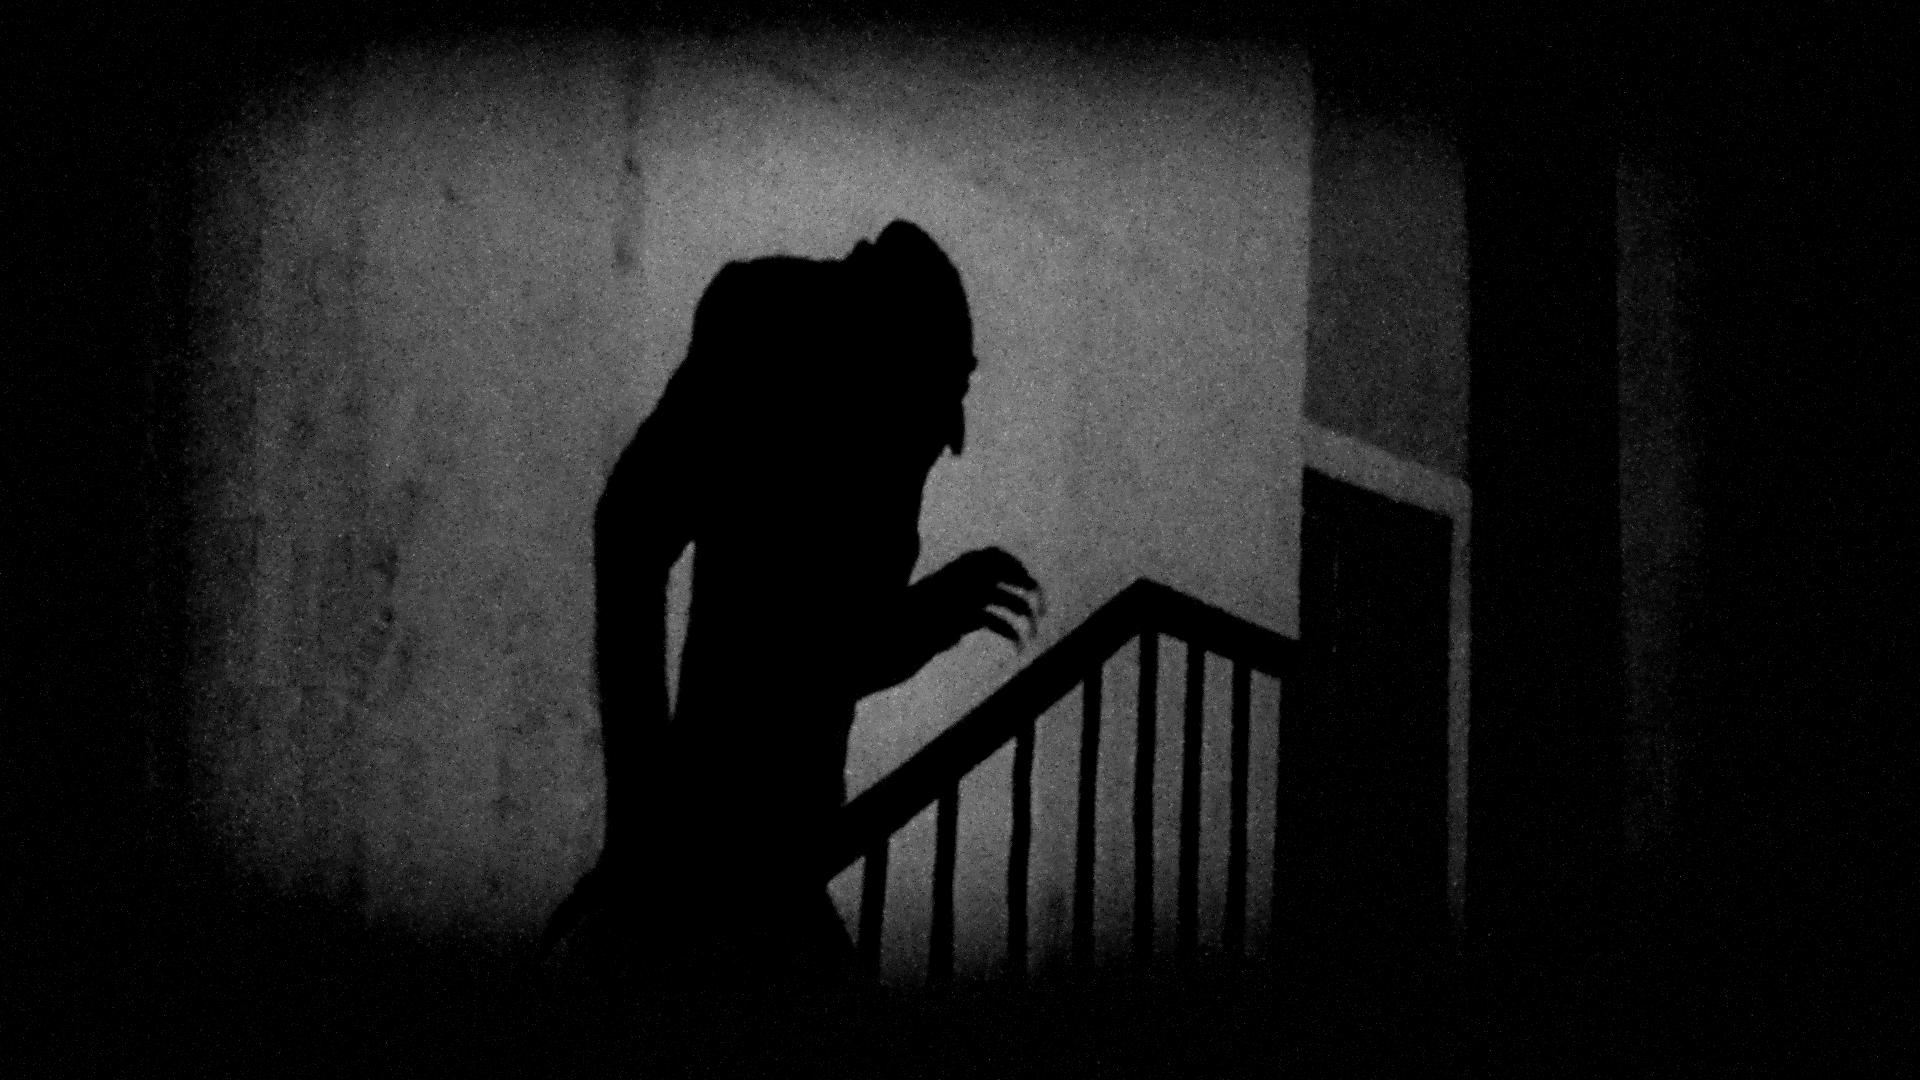 """A still from Murnau's Nosferatu. I explore the importance of the shadow in the essay, """"Nosferatu as 20th Century German Zeitgeist"""", by Anders Larsson."""